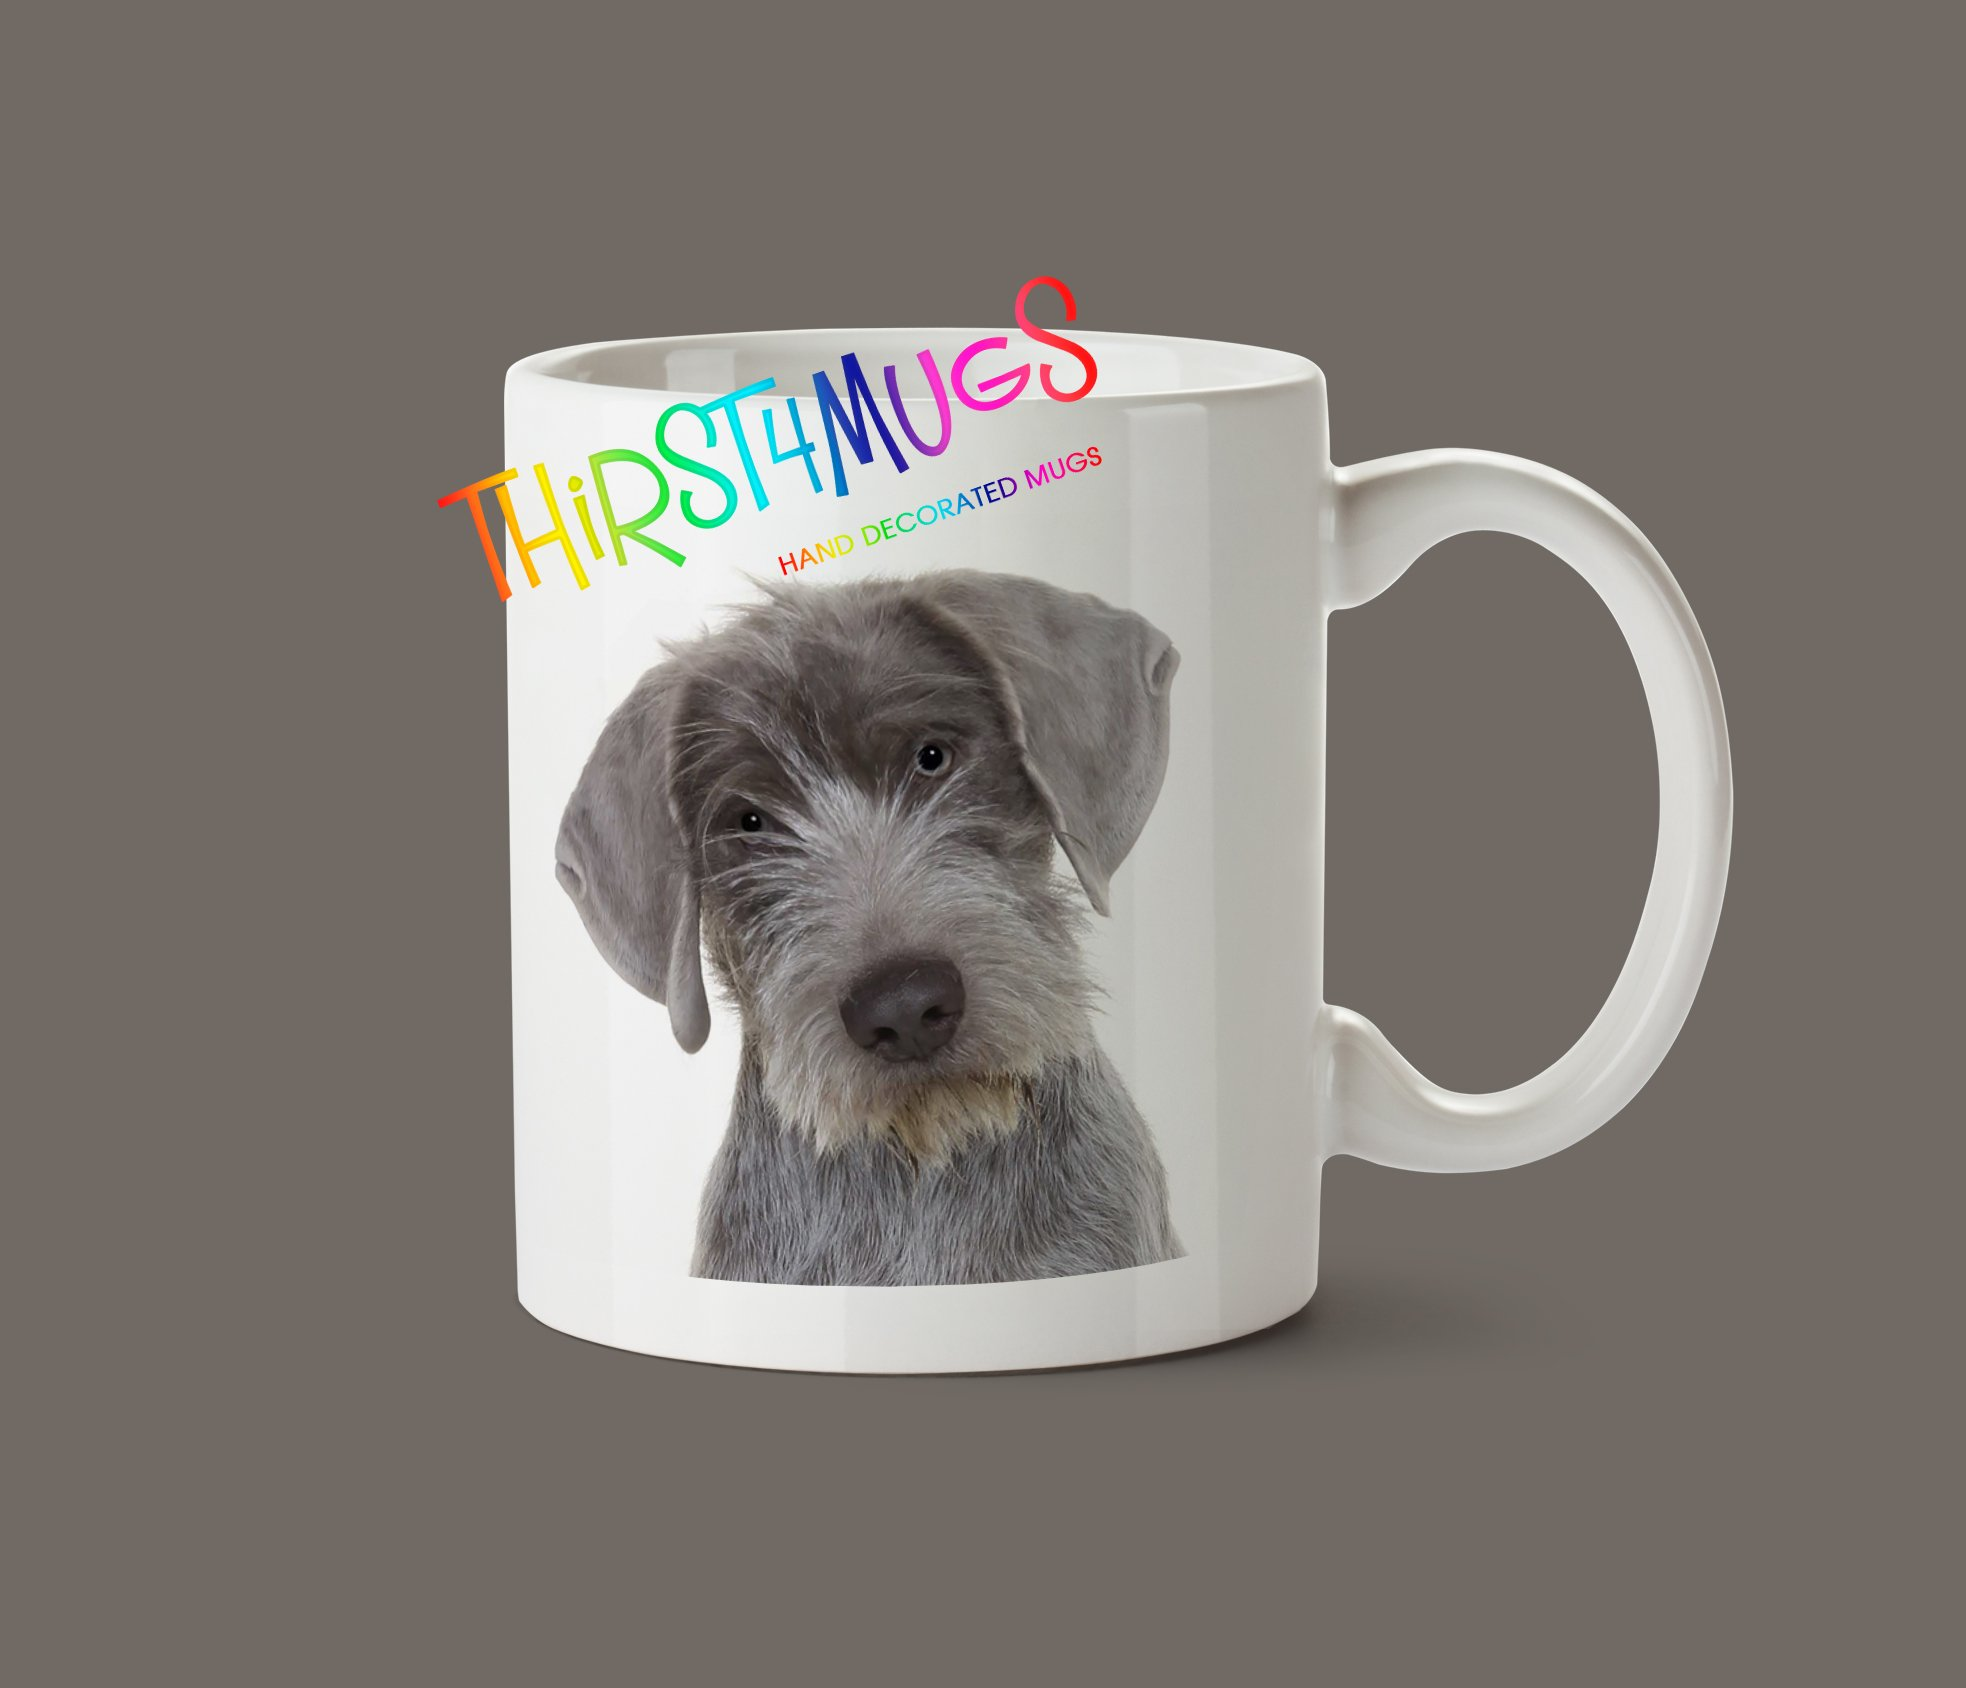 Slovakian Rough Haired Pointer Puppy Mug